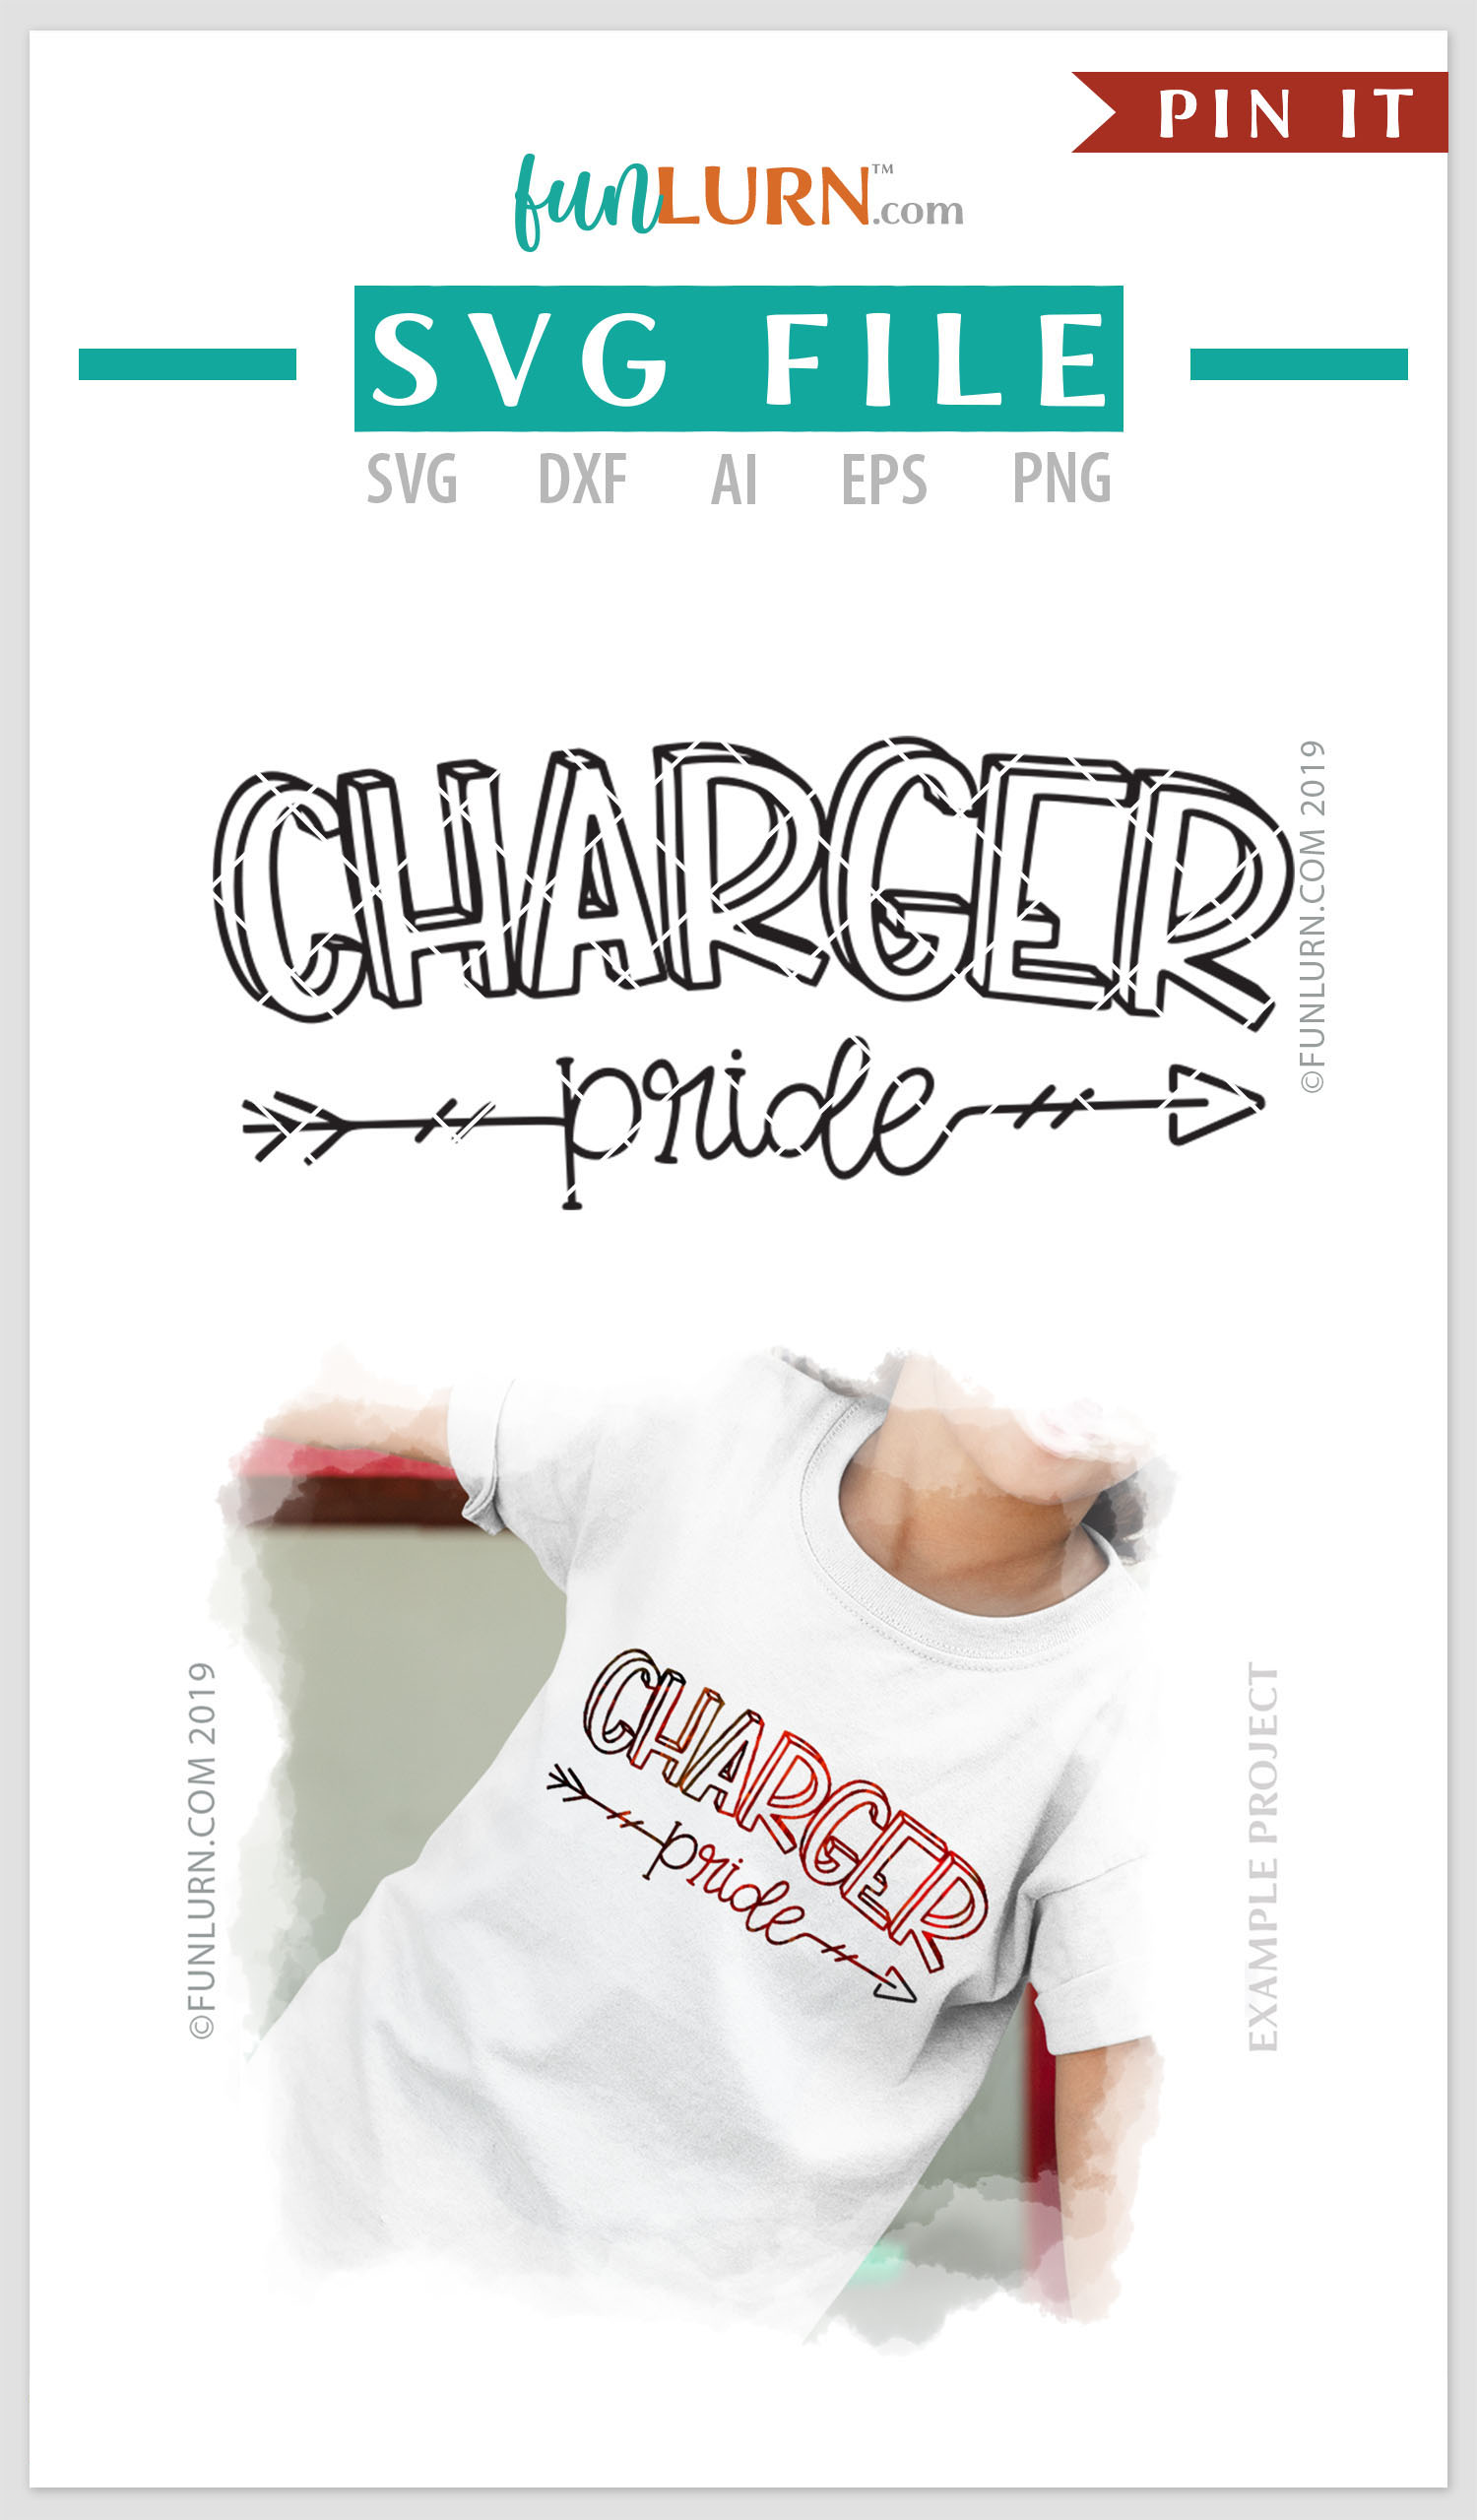 Charger Pride Team SVG Cut File example image 4